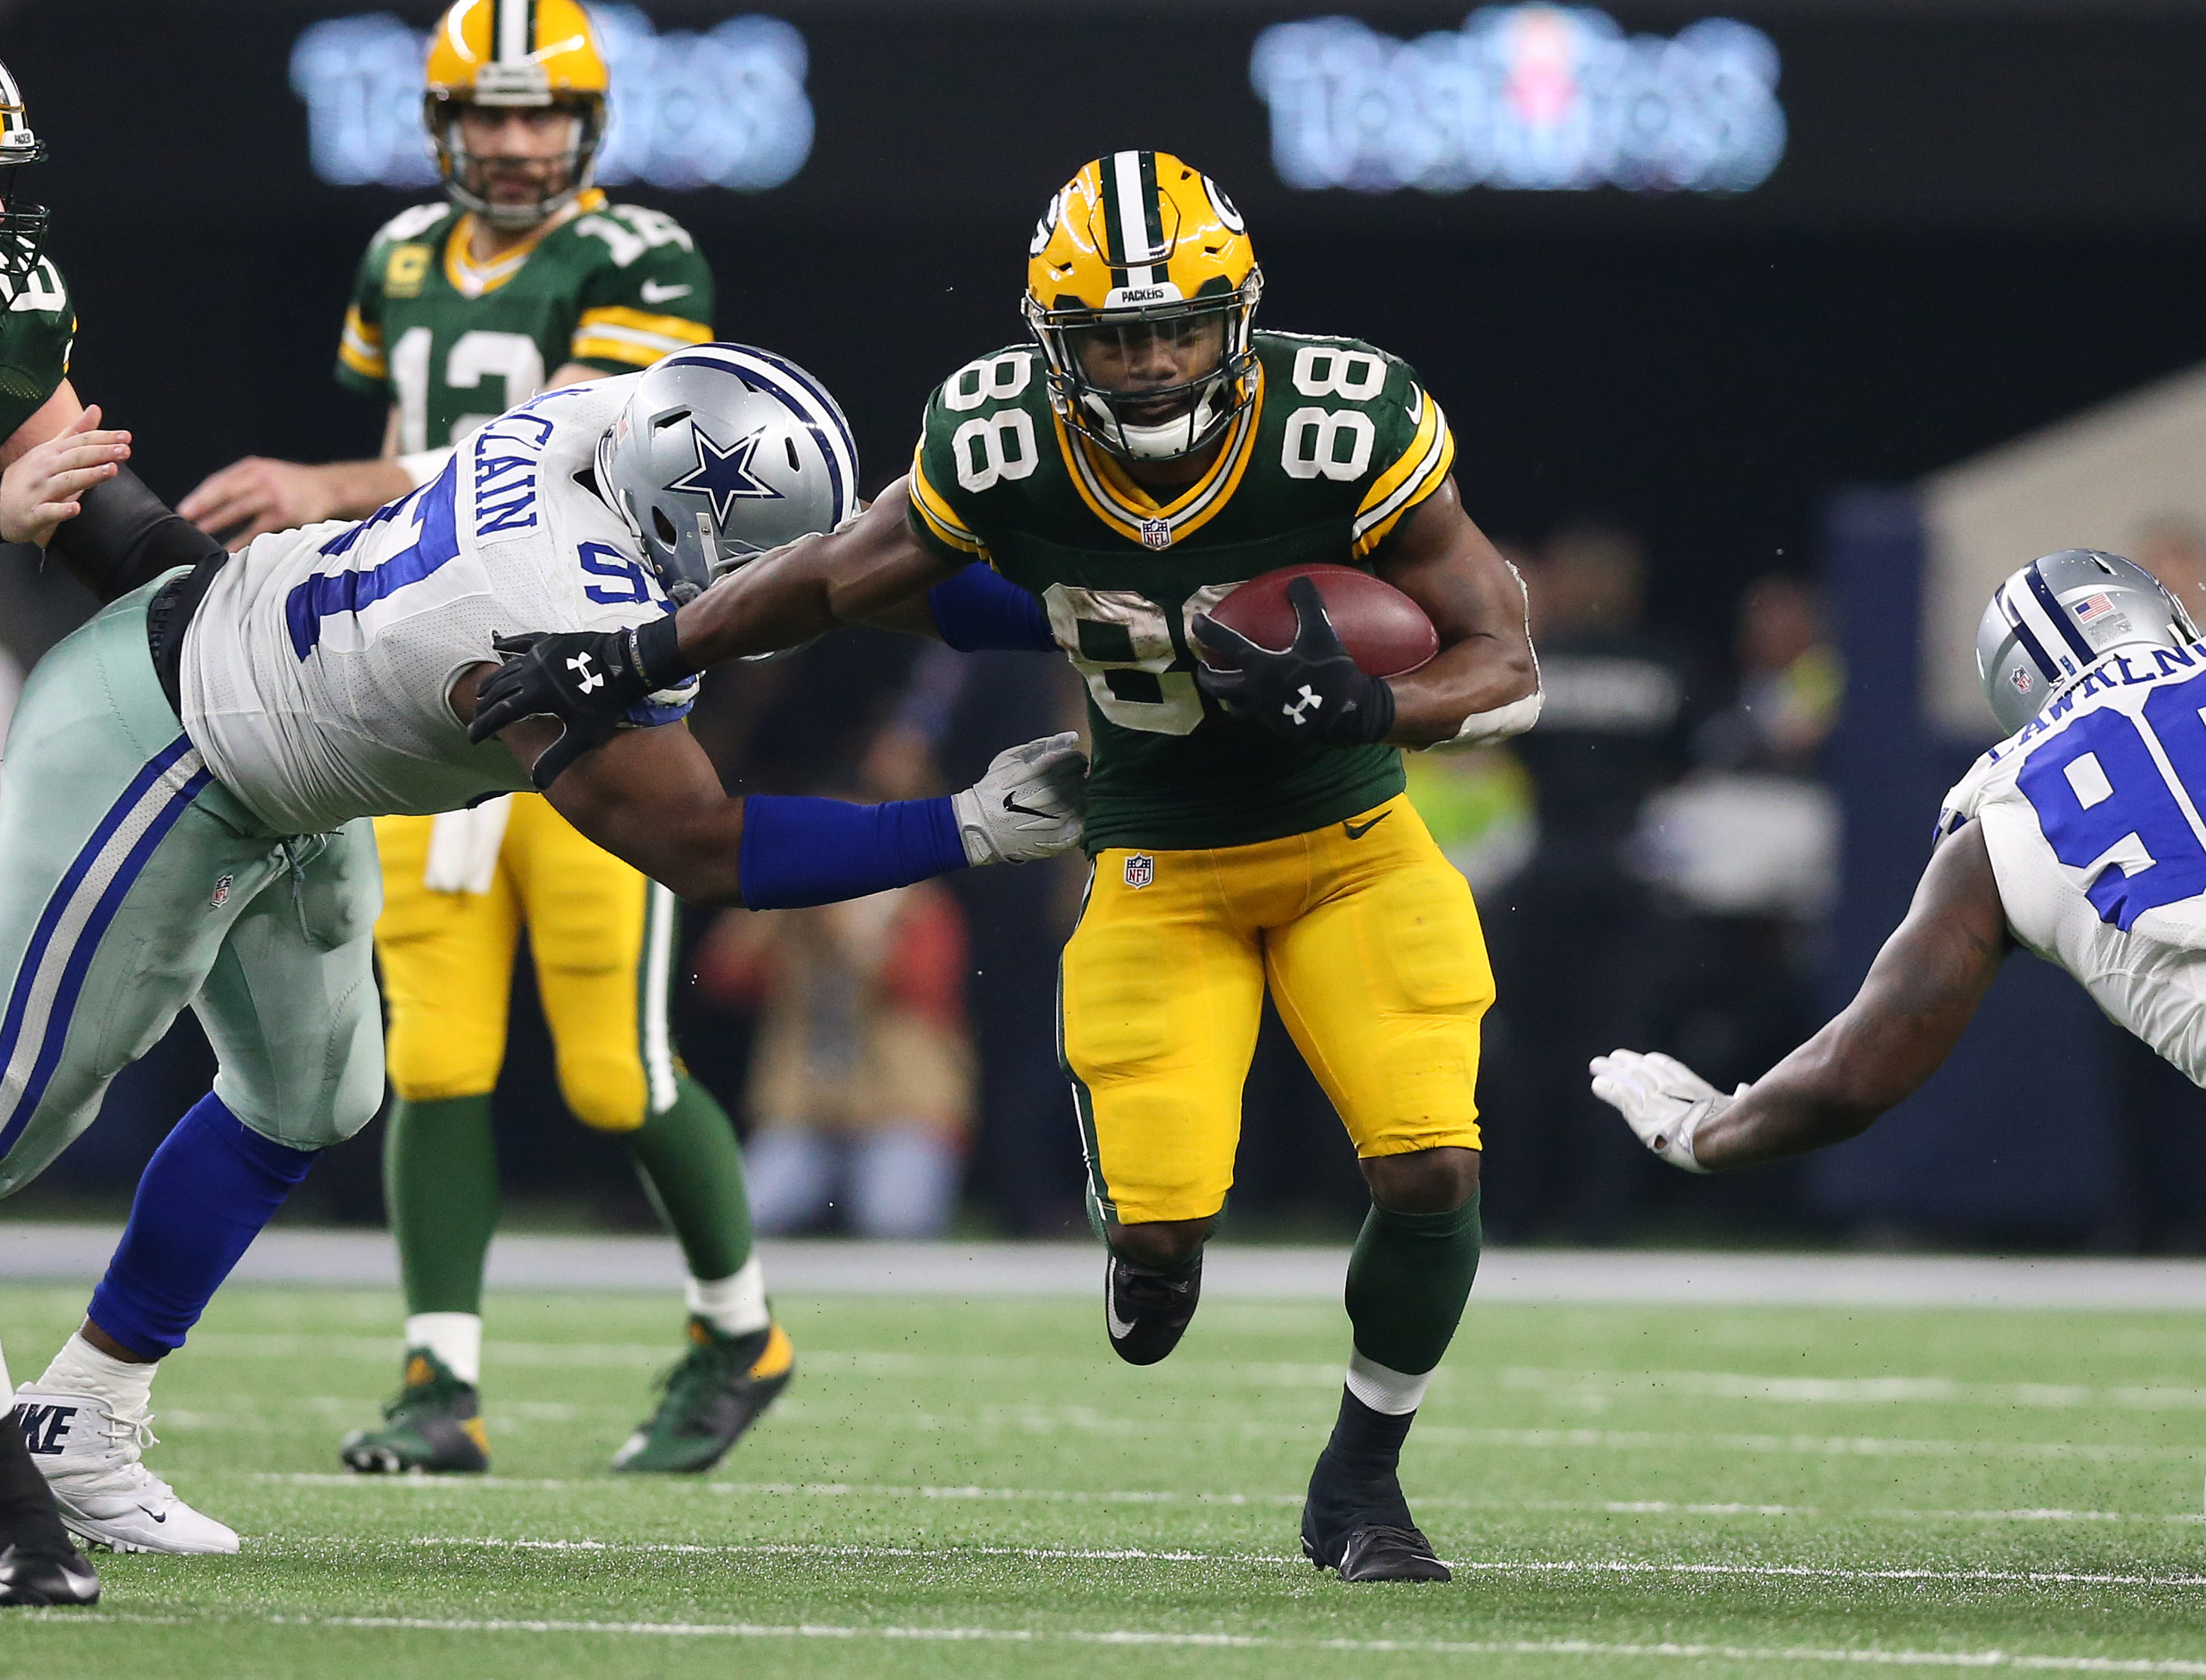 Green Bay Packers running back Ty Montgomery stiff arms against Dallas Cowboys defensive tackle Terrell McClain in the NFC Divisional playoff game at AT&T Stadium. Matthew Emmons-USA TODAY Sports